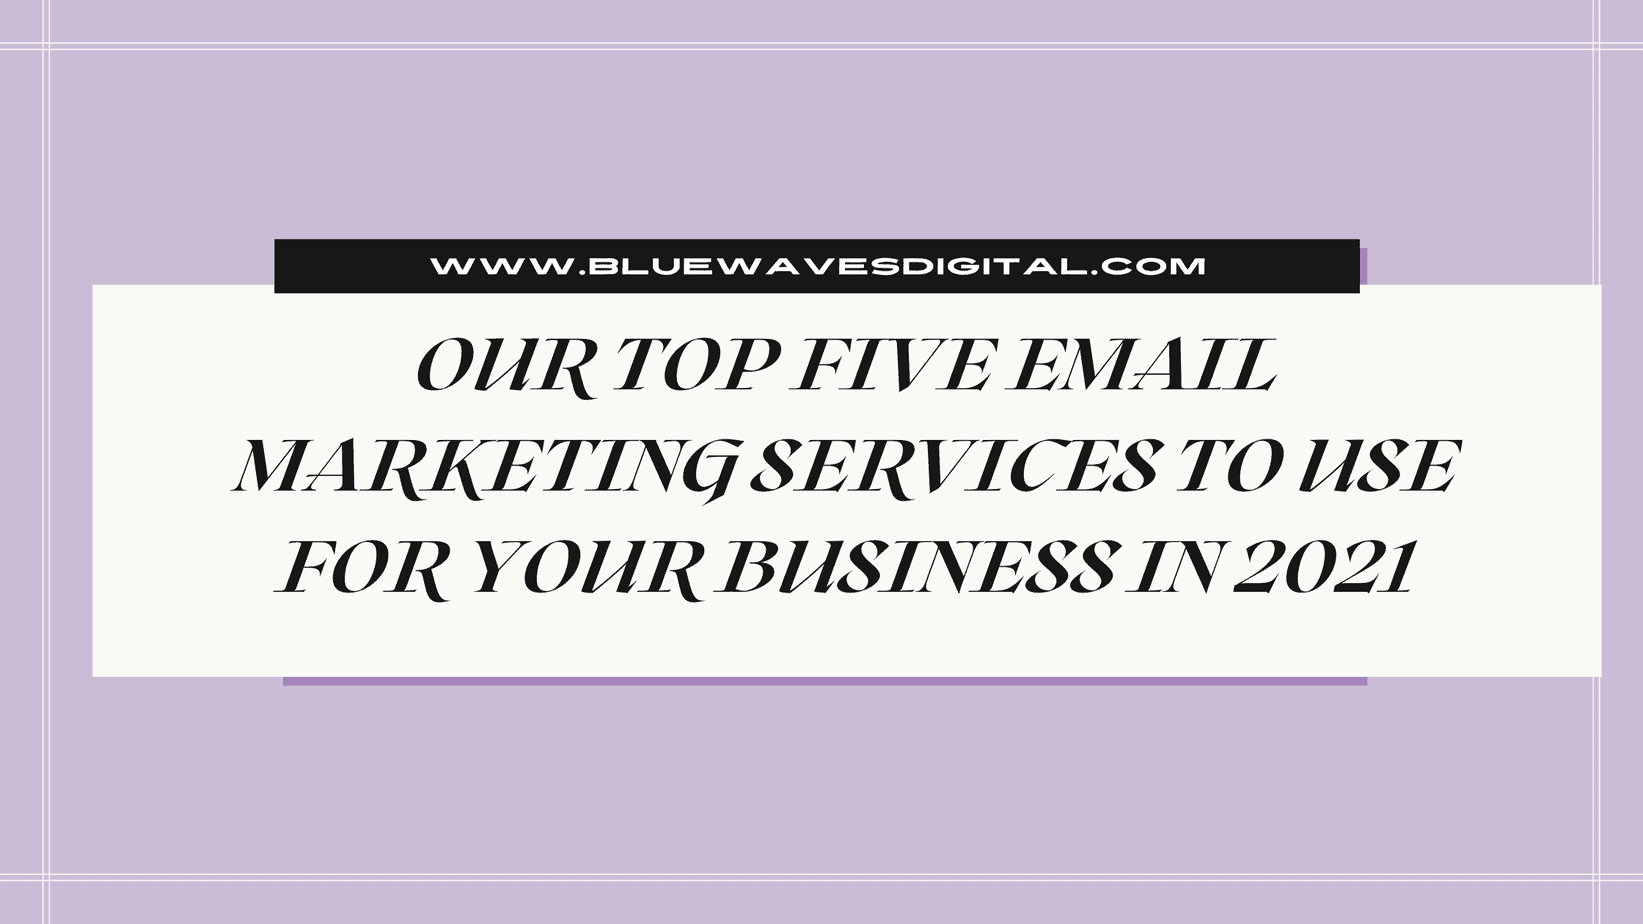 Our Top Five Email Marketing Services to Use for Your Business In 2021